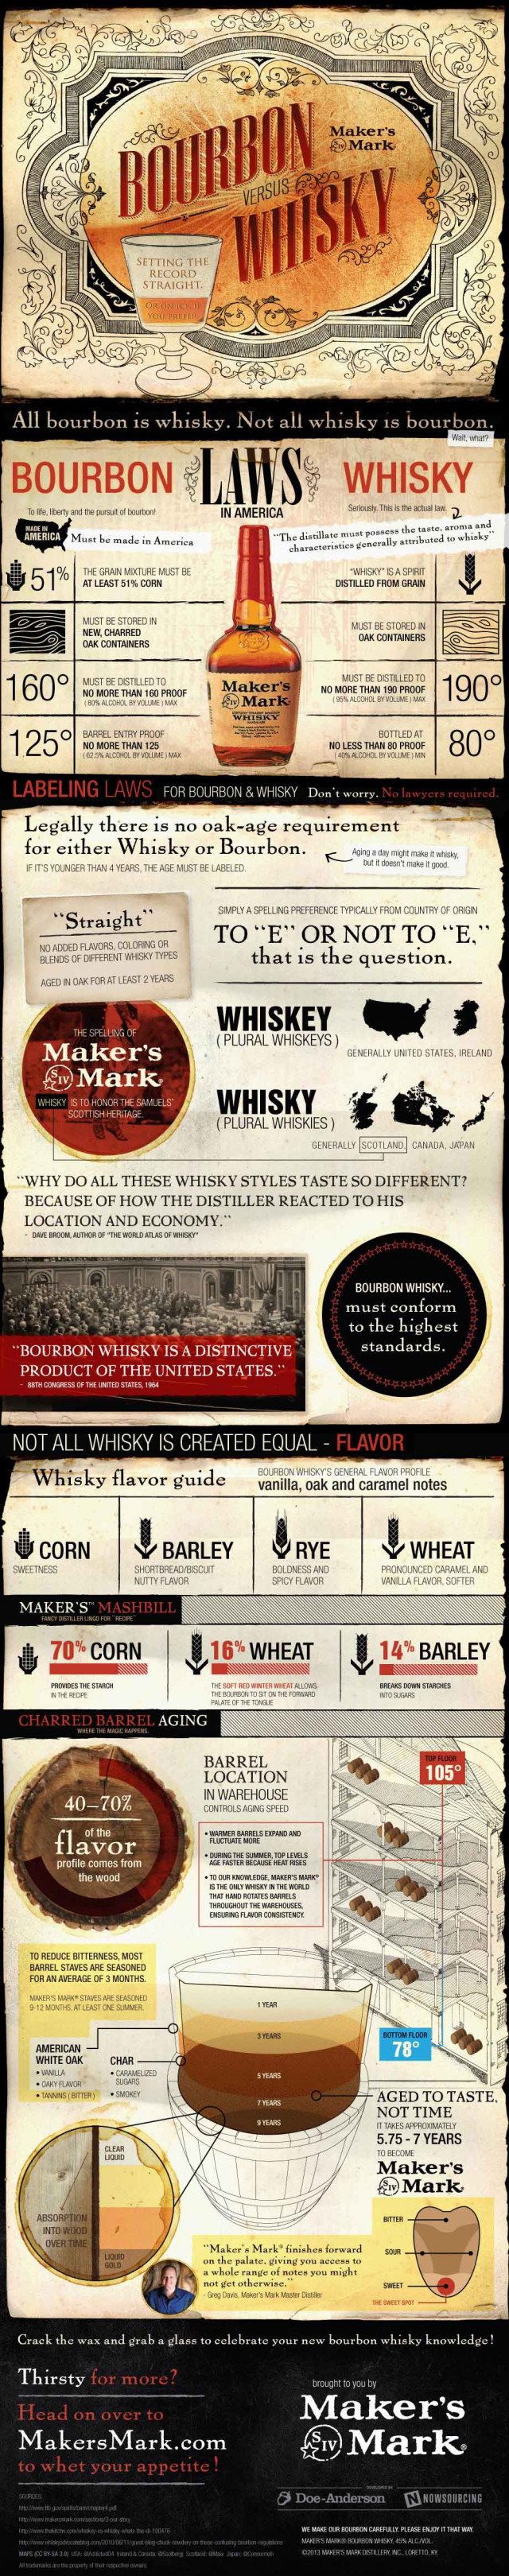 Bourbon vs Whisky: Setting the Record Straight